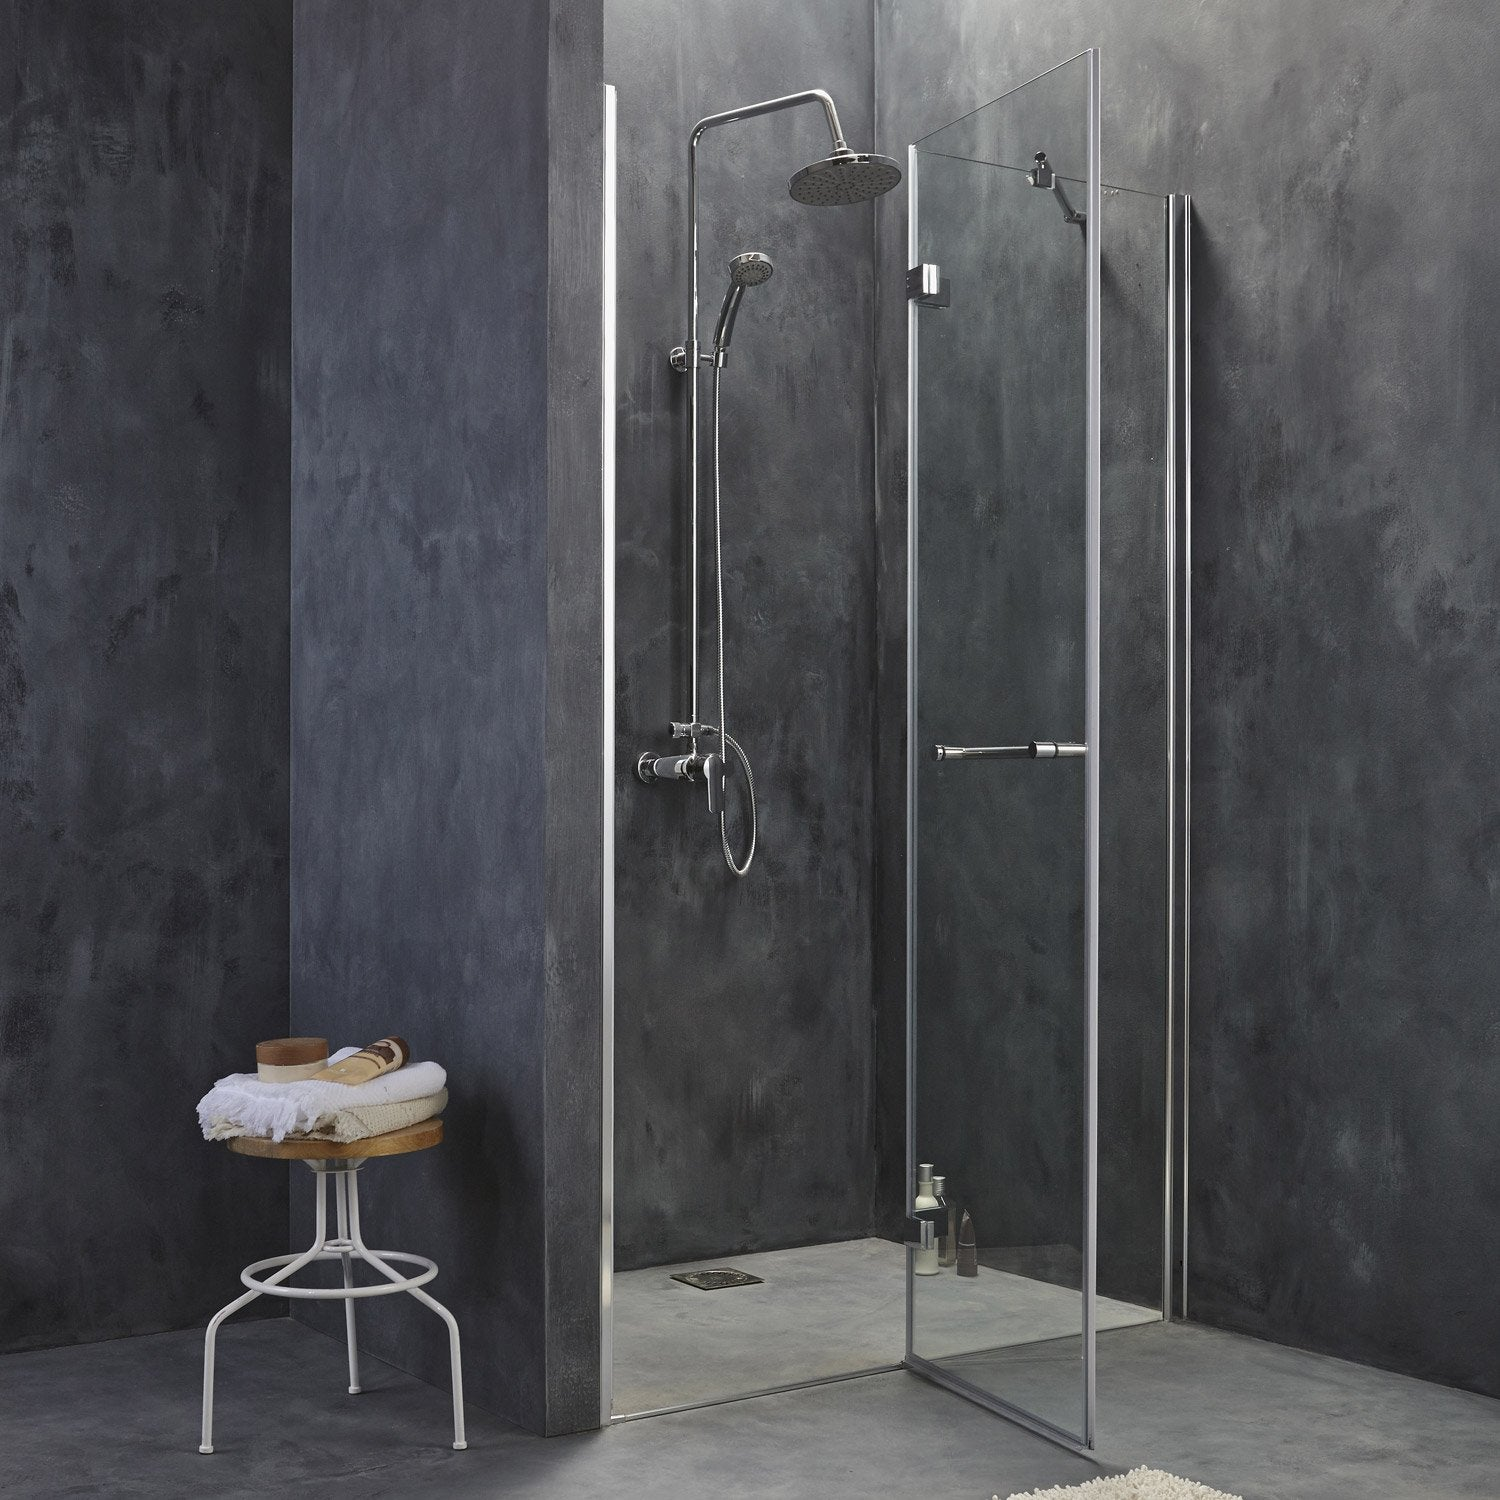 porte de douche pivotante 118 5 121 cm profil chrom. Black Bedroom Furniture Sets. Home Design Ideas